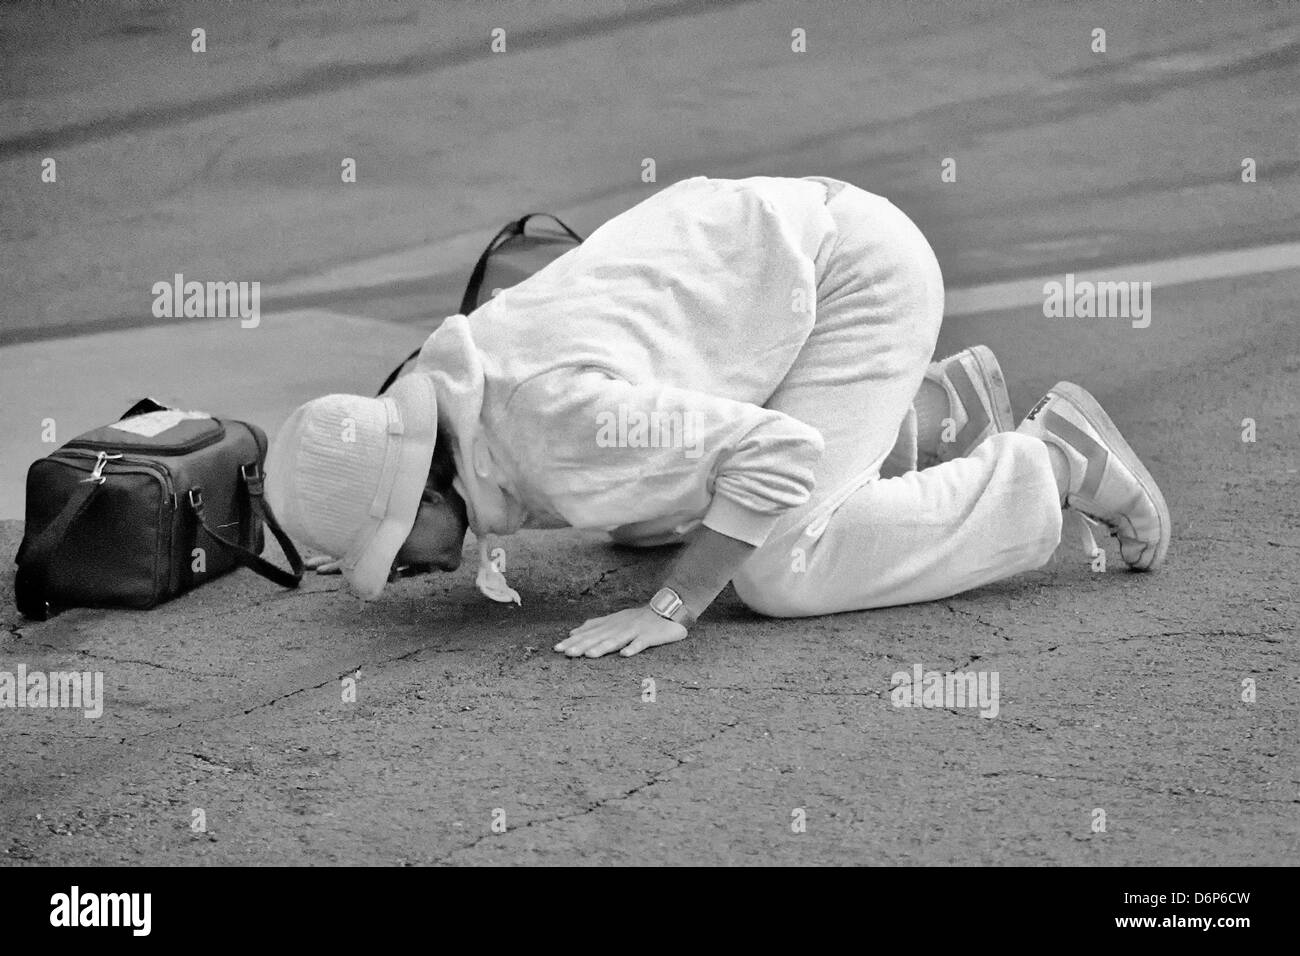 A Student from the Saint George's University School of Medicine in Grenada kisses the ground after arriving - Stock Image